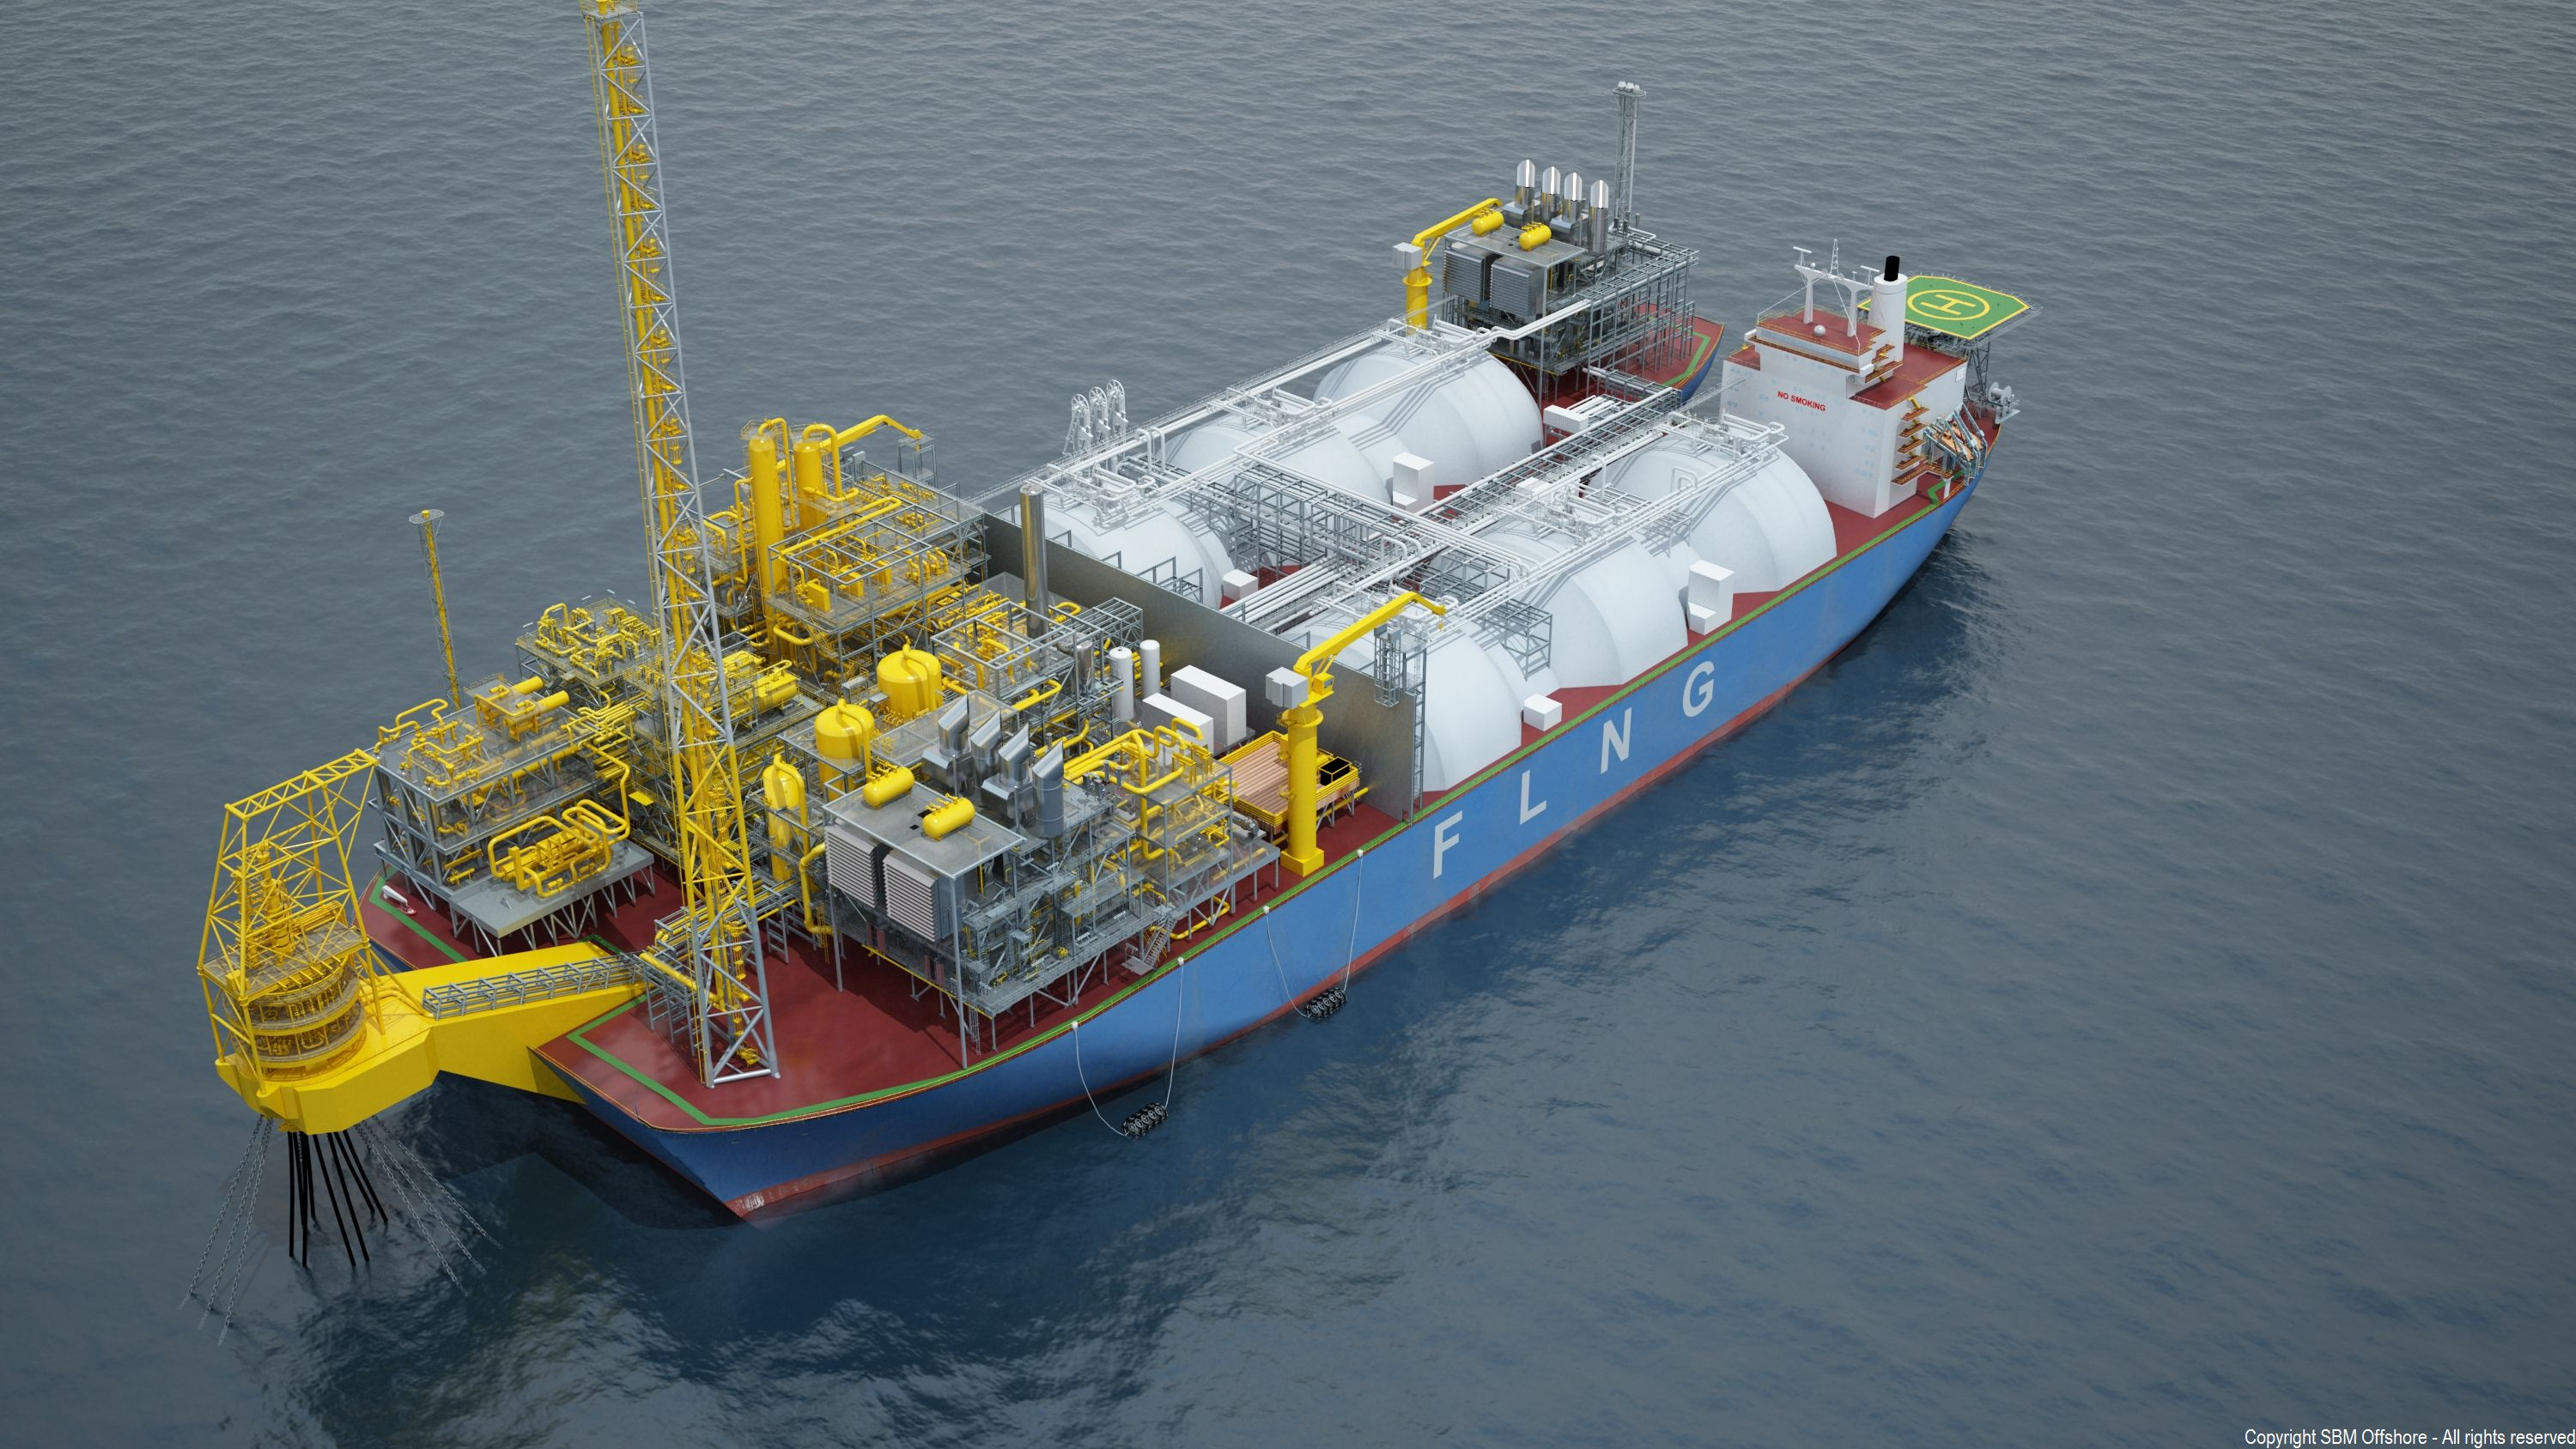 SBM Offshore to pay $240m in out of court deal on bribery